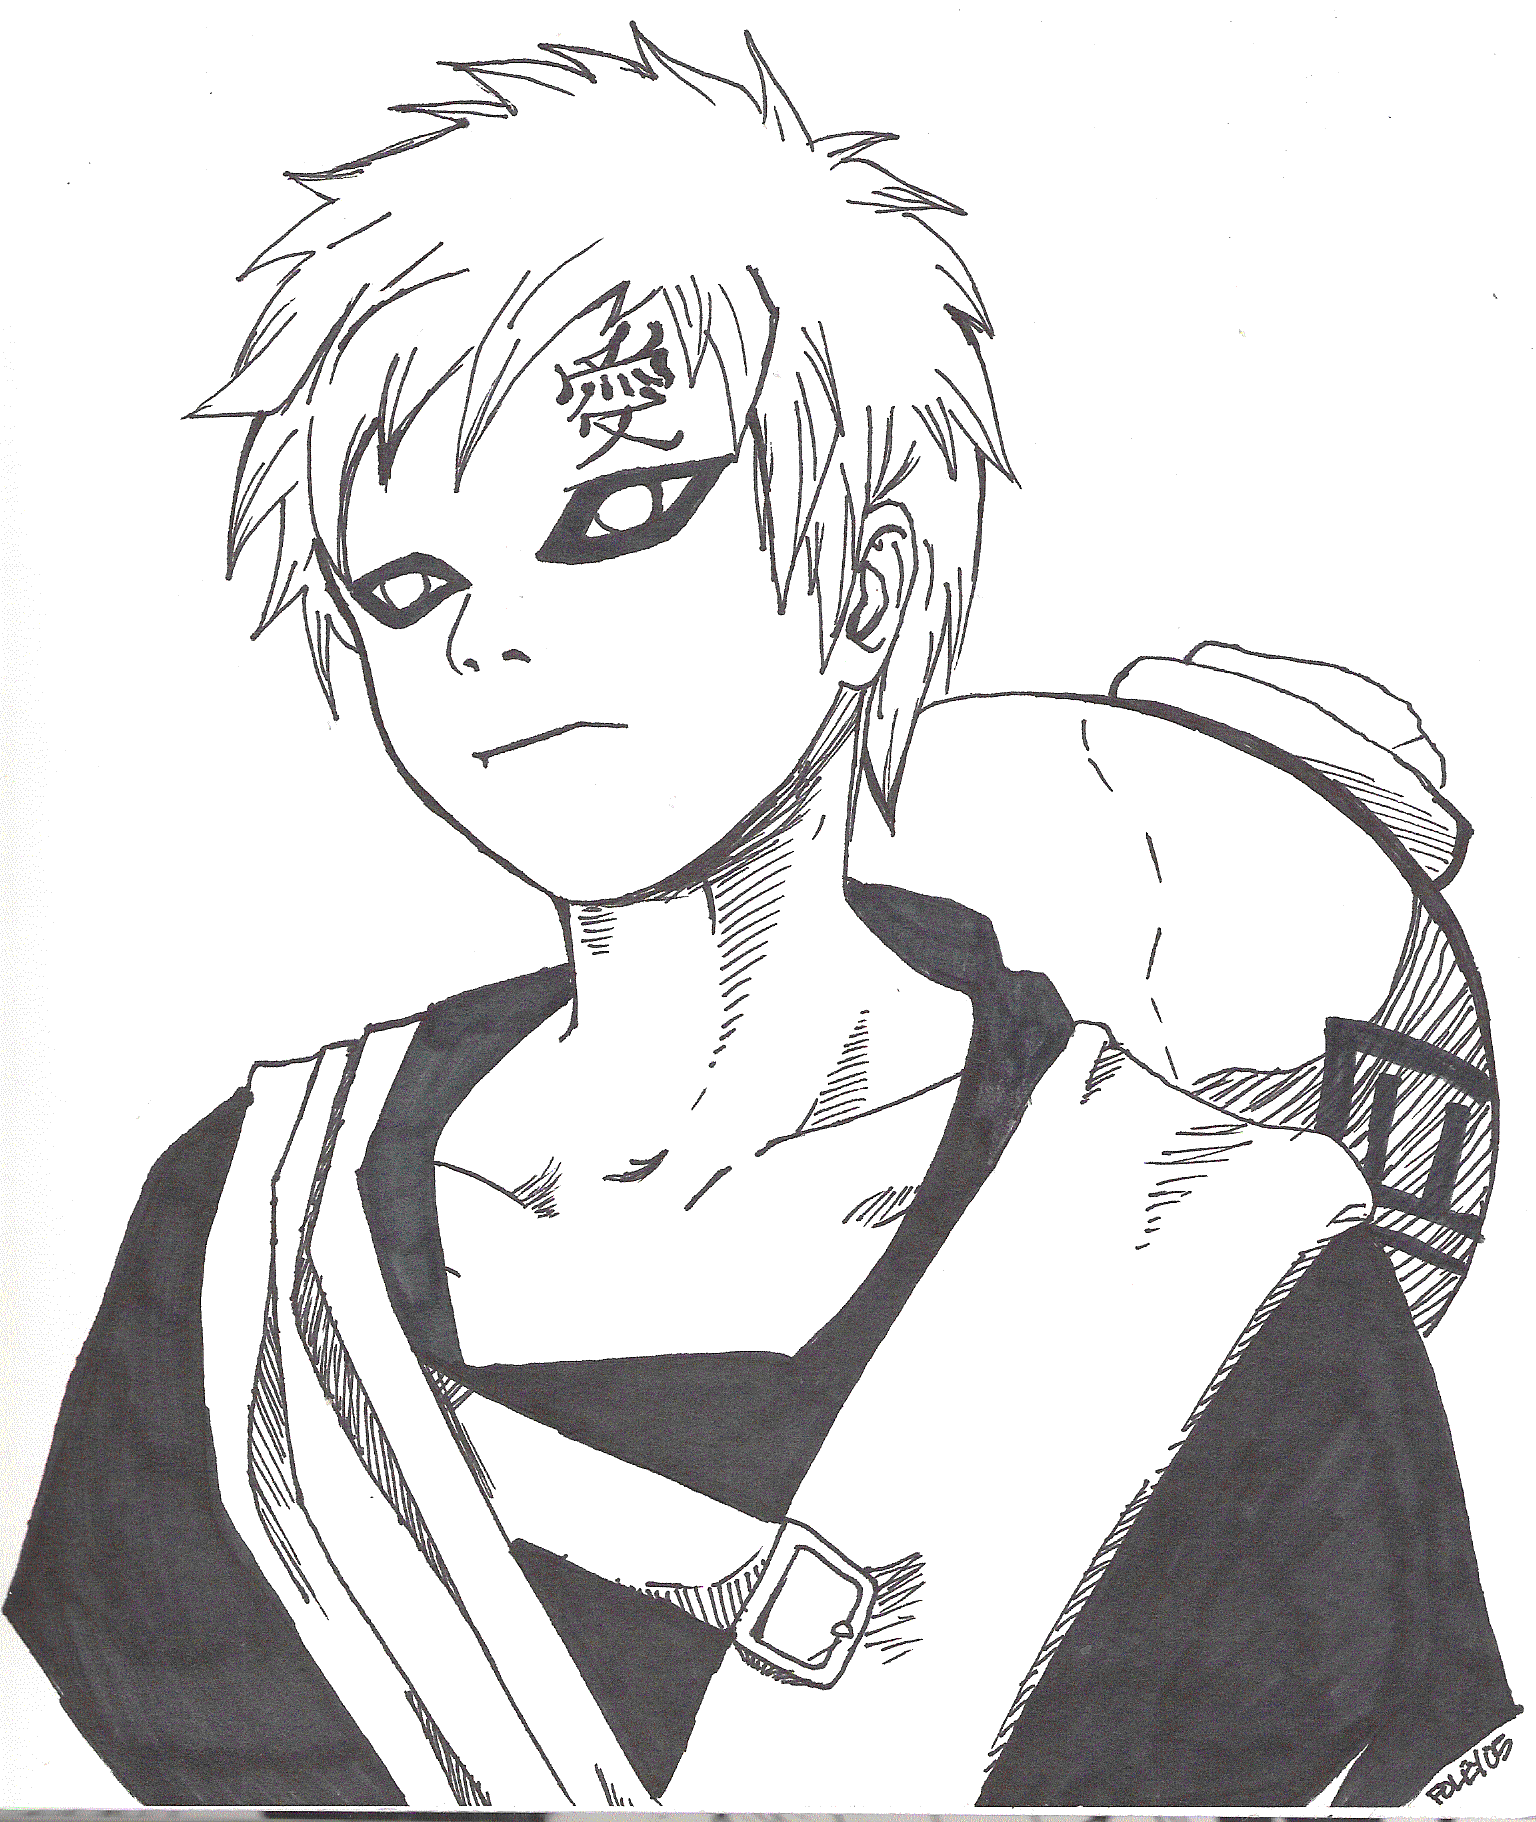 Gaara of the sand by Pimpstress22 on DeviantArt